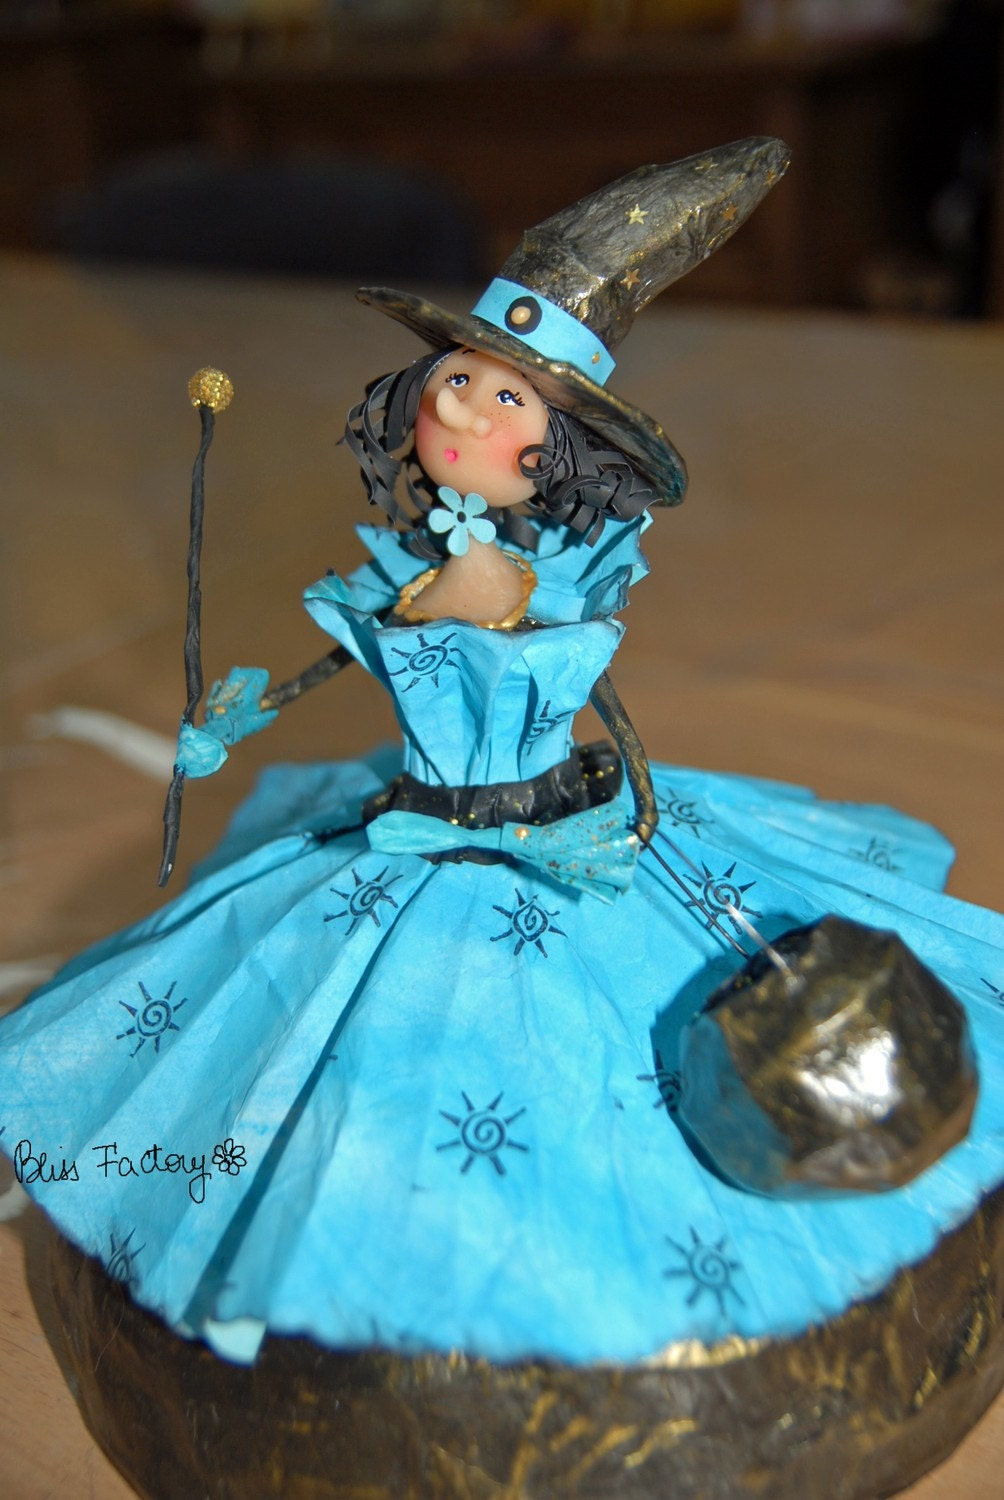 Seraphine, the blue paper witch